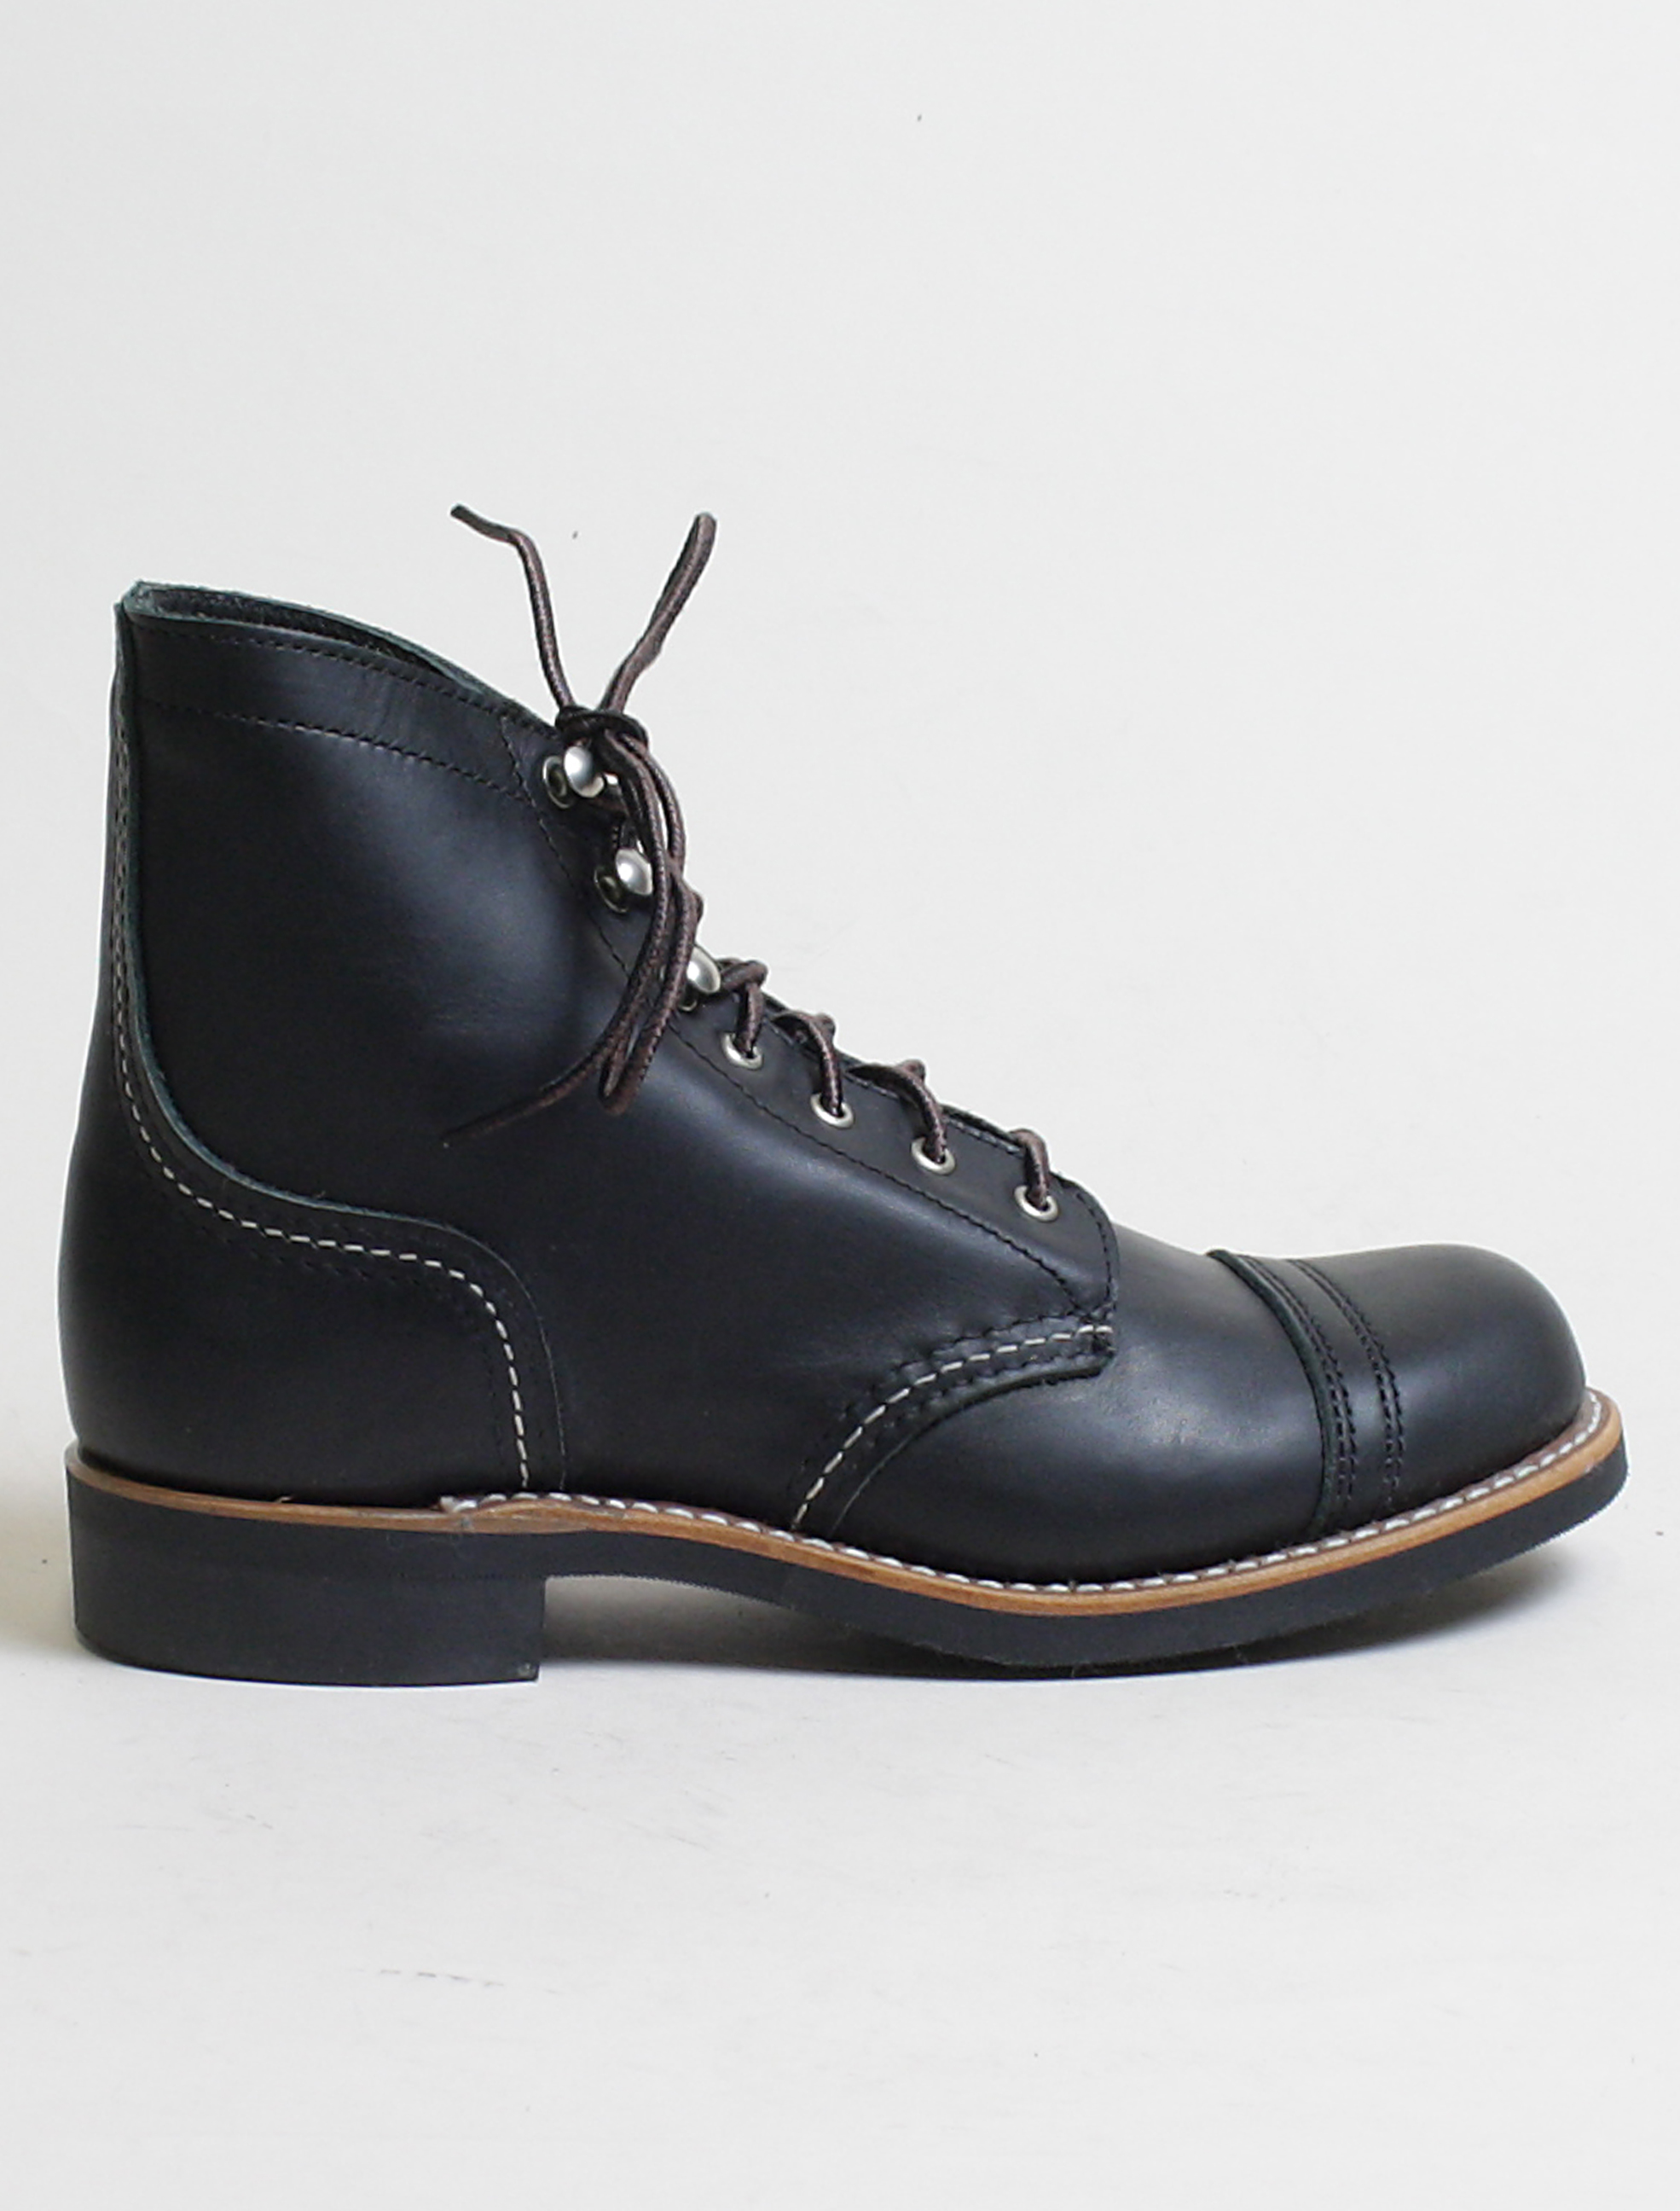 reputable site b3aa0 d1bd9 Red Wing 3366 Iron Ranger Black